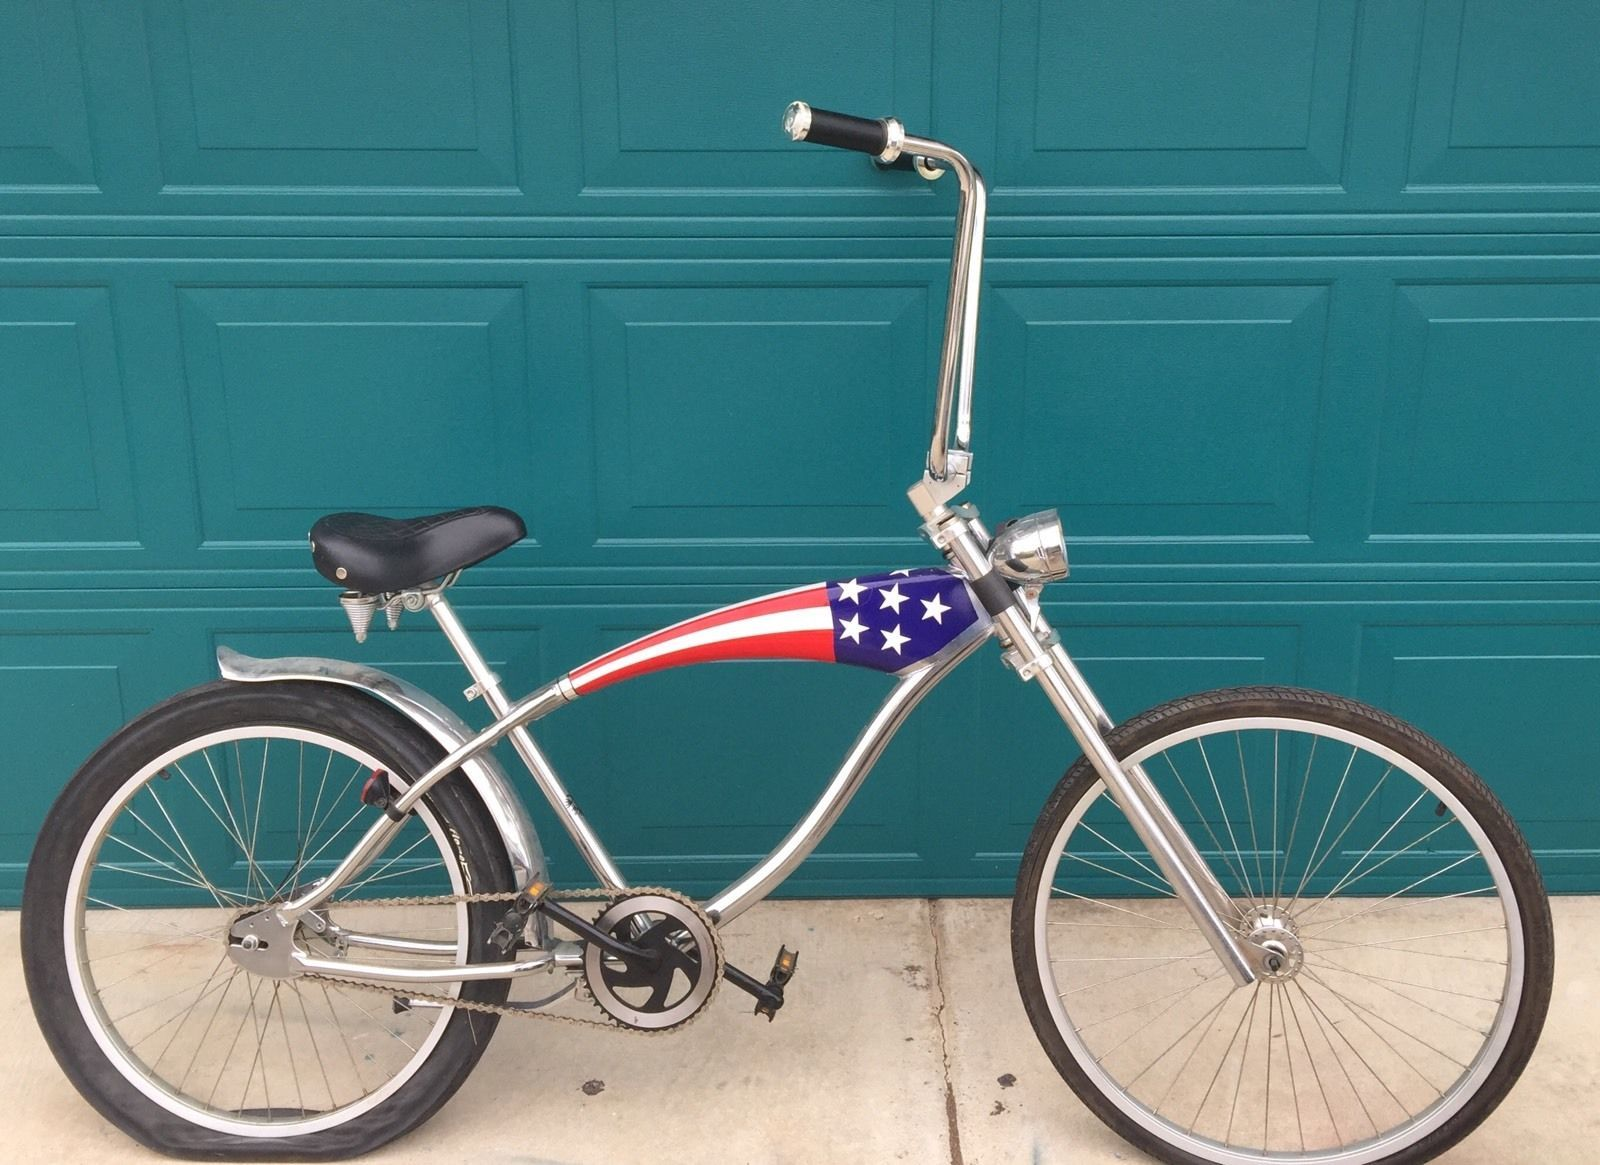 Torker Bmx Brand Chopper Bicycle Ebay America Themed Bicycles